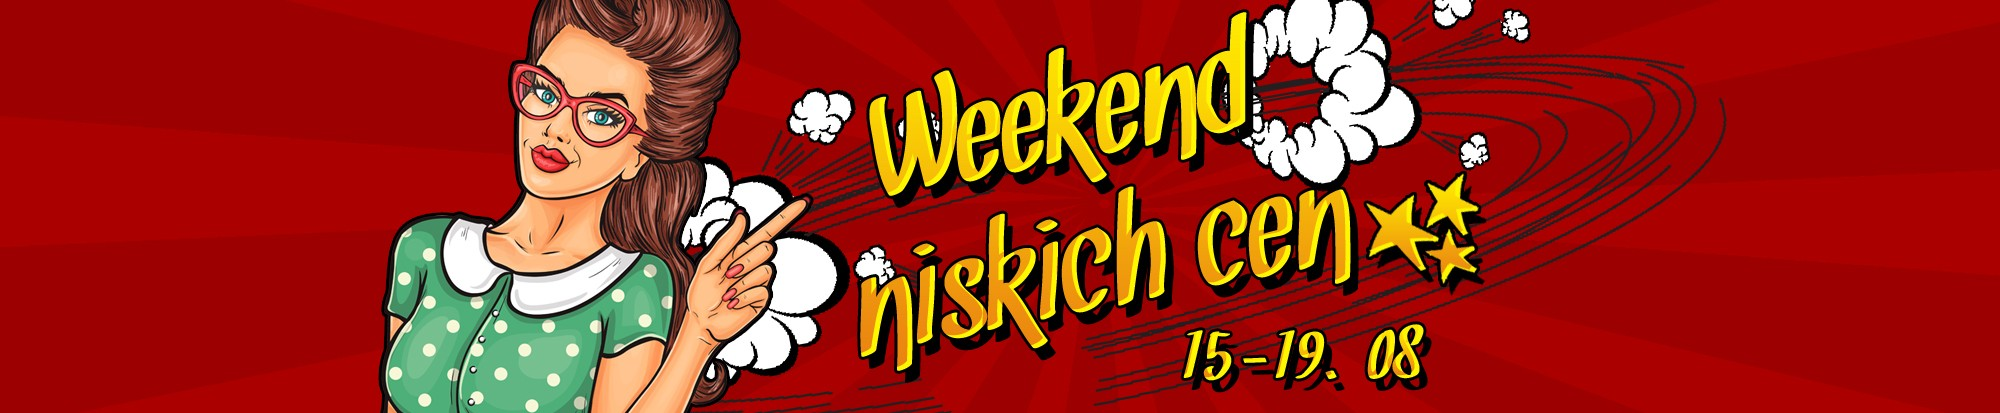 weekend niskich cen